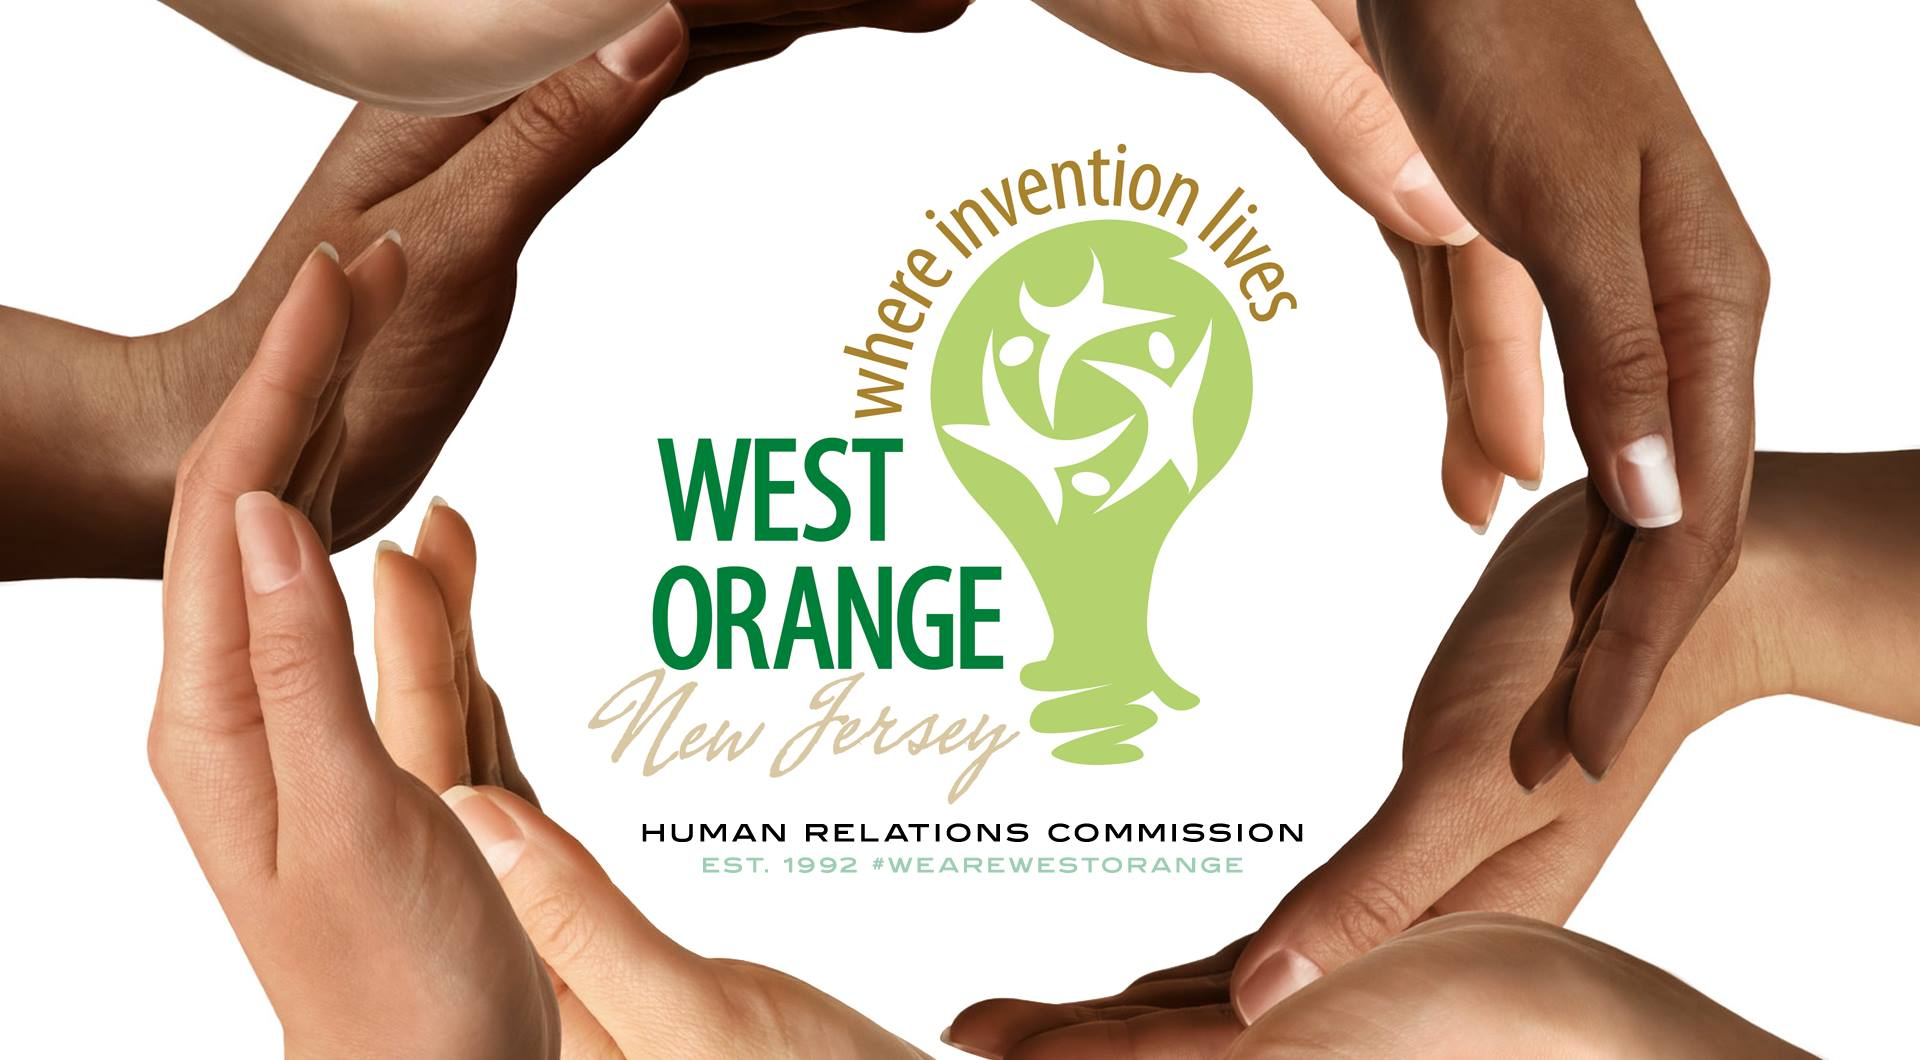 West Orange New Jersey Human Relations Commission